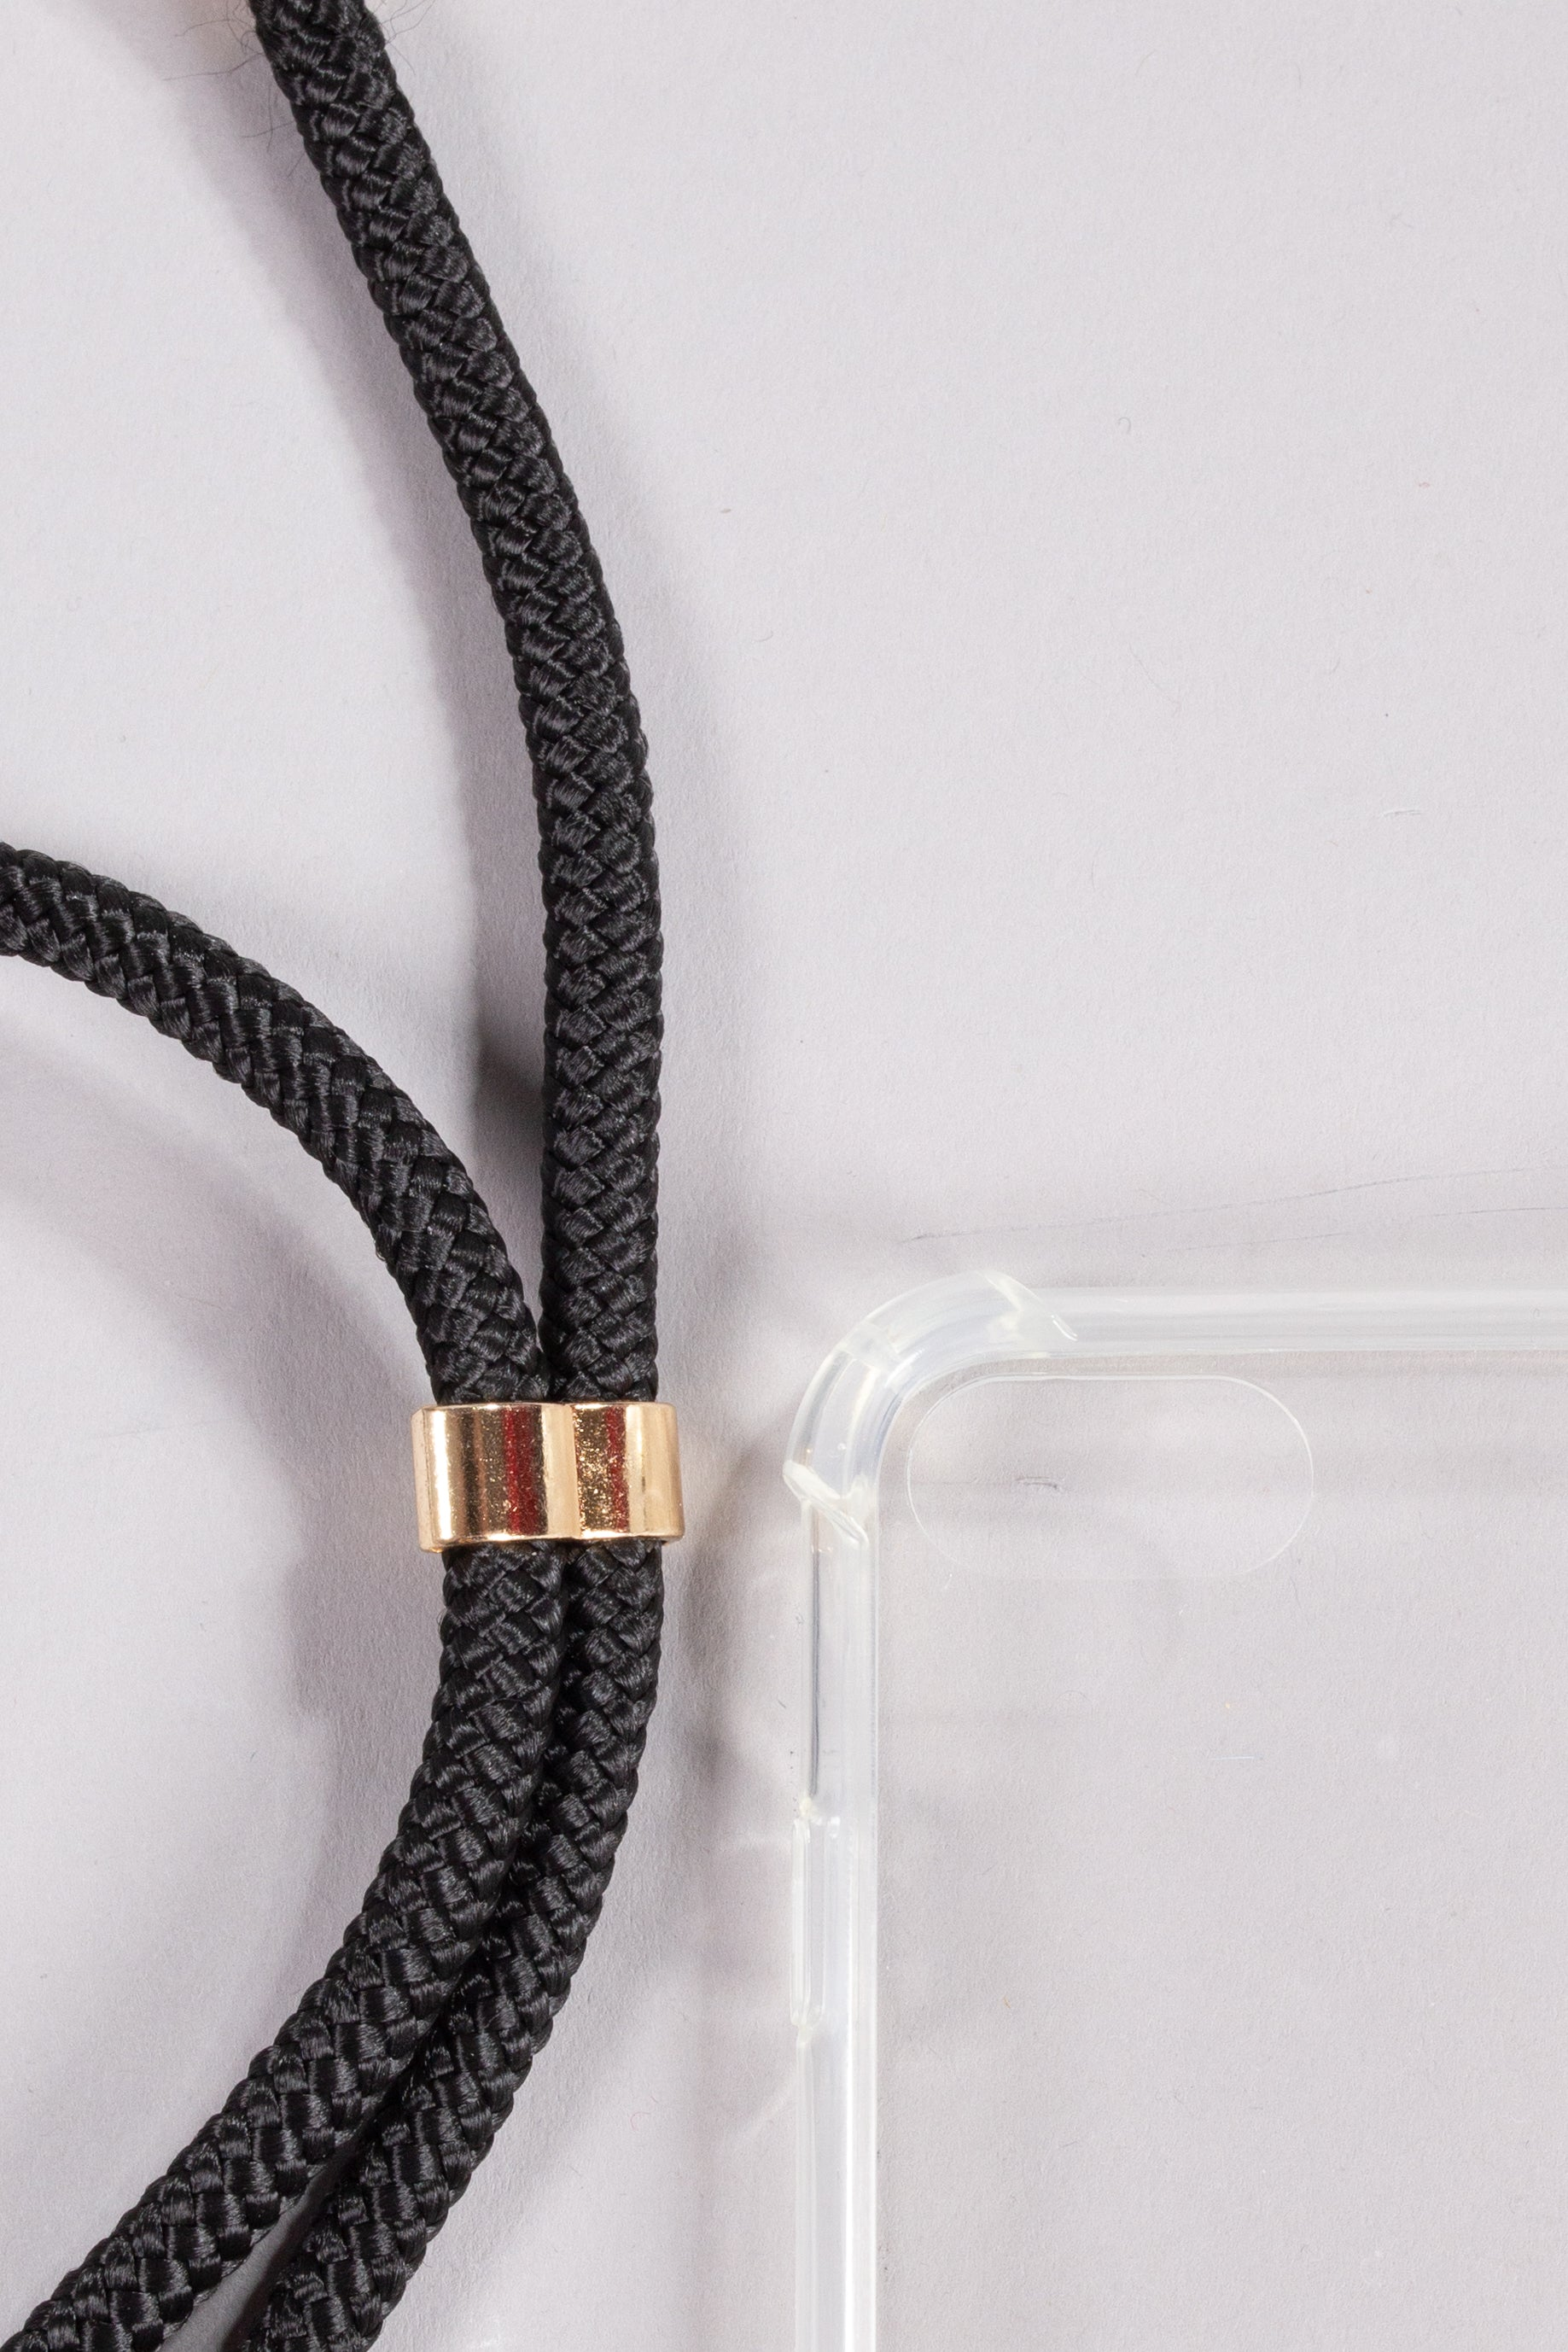 Phone Necklace - Plain Black